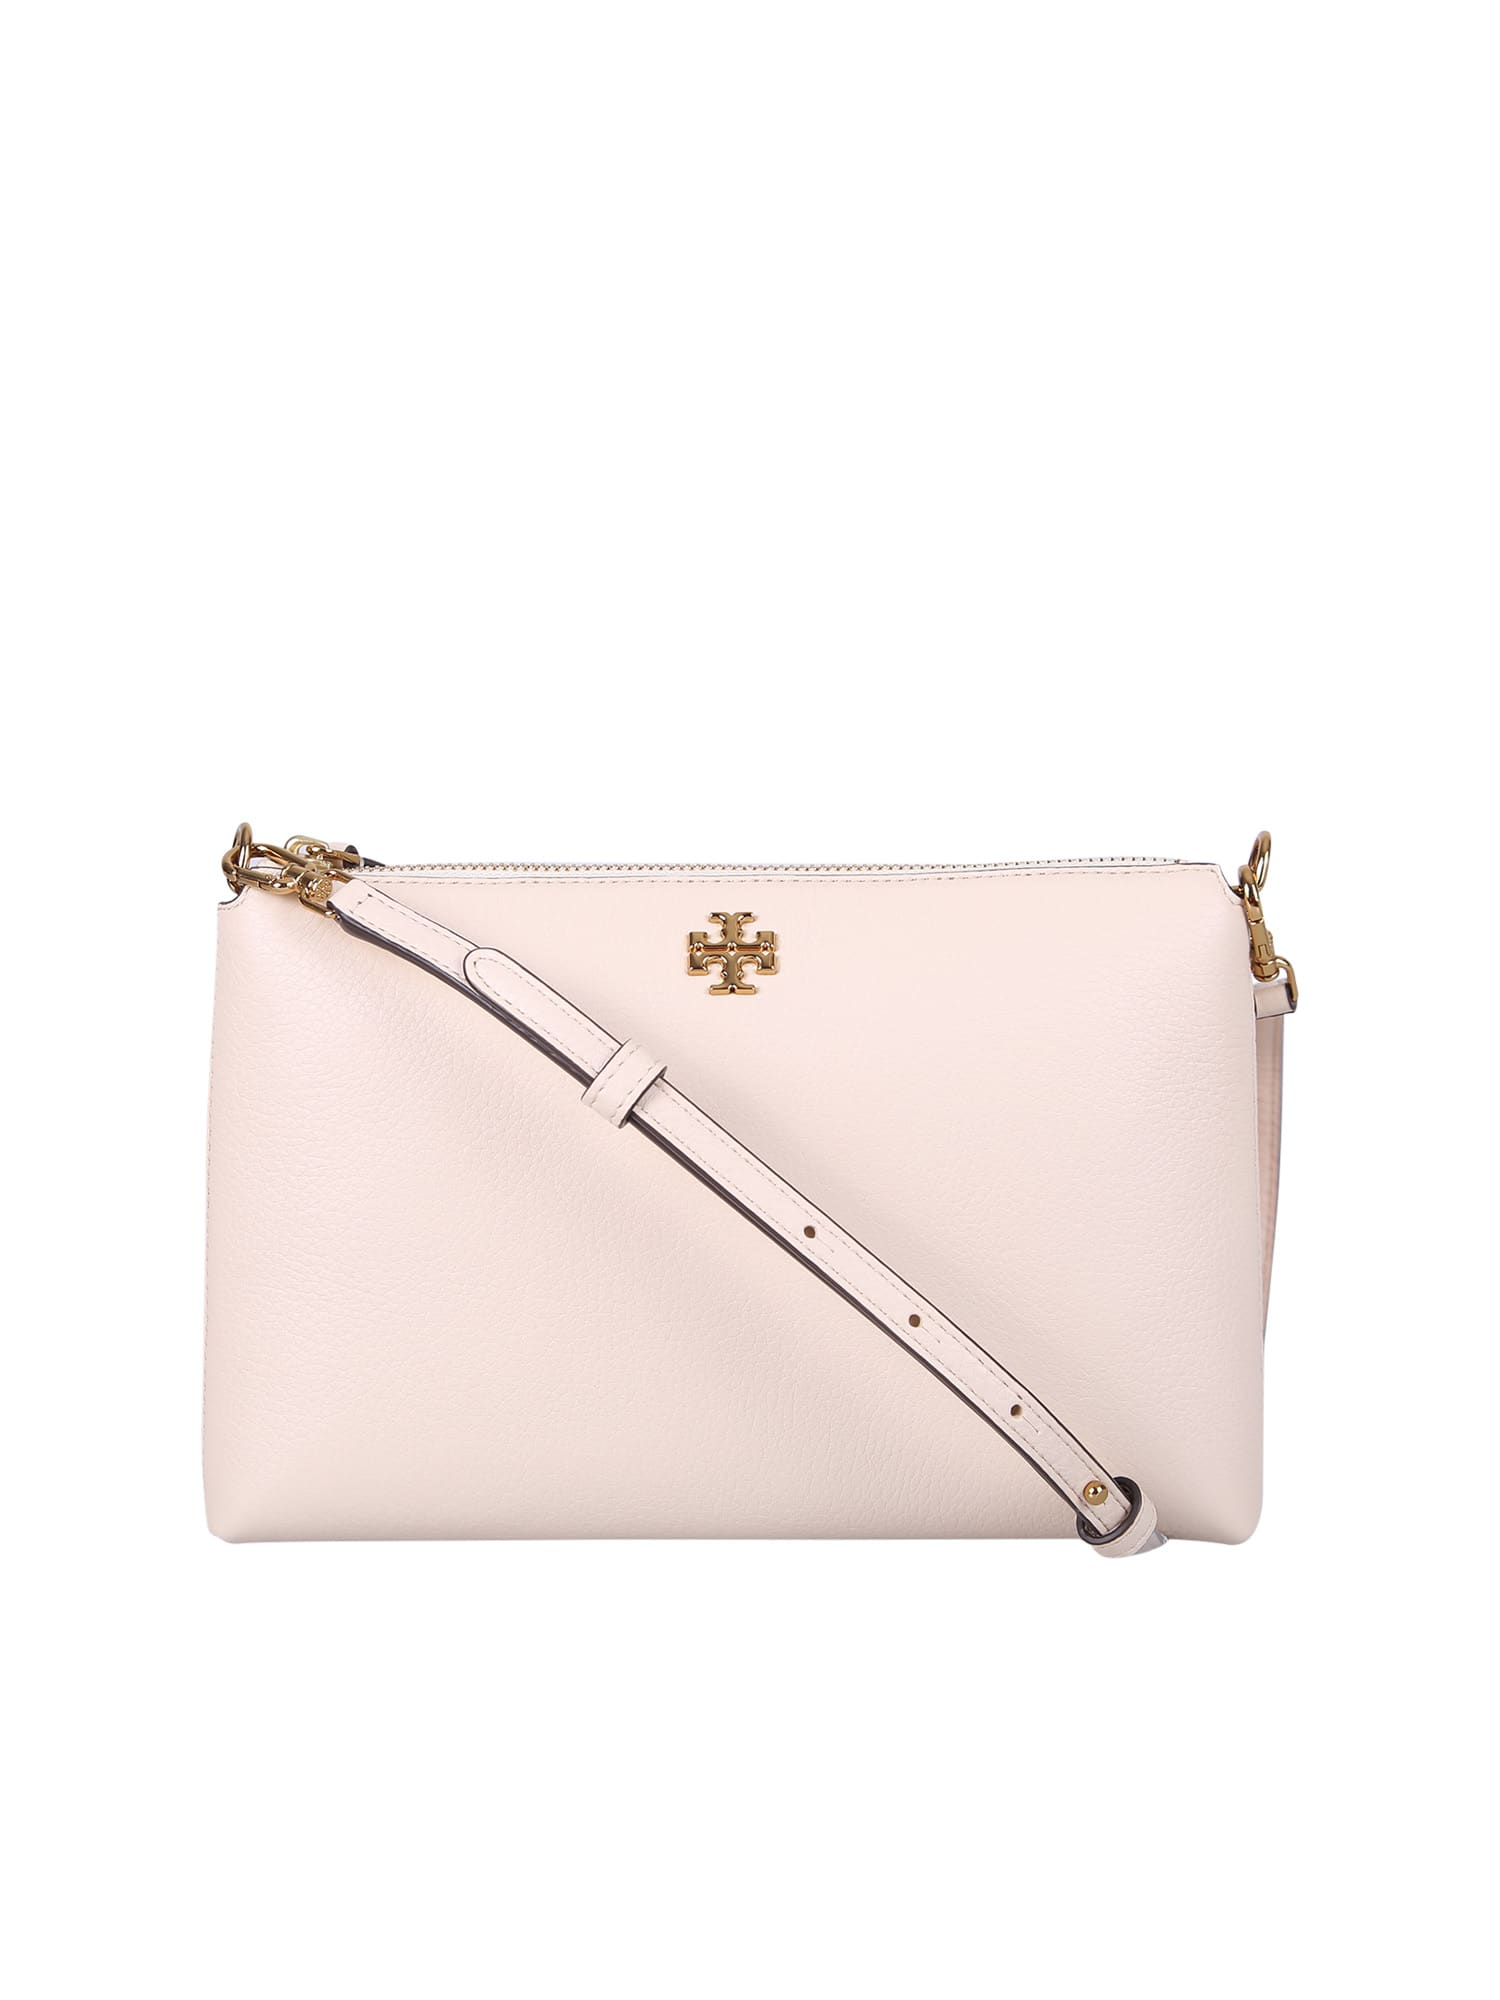 Tory Burch Kita Bag